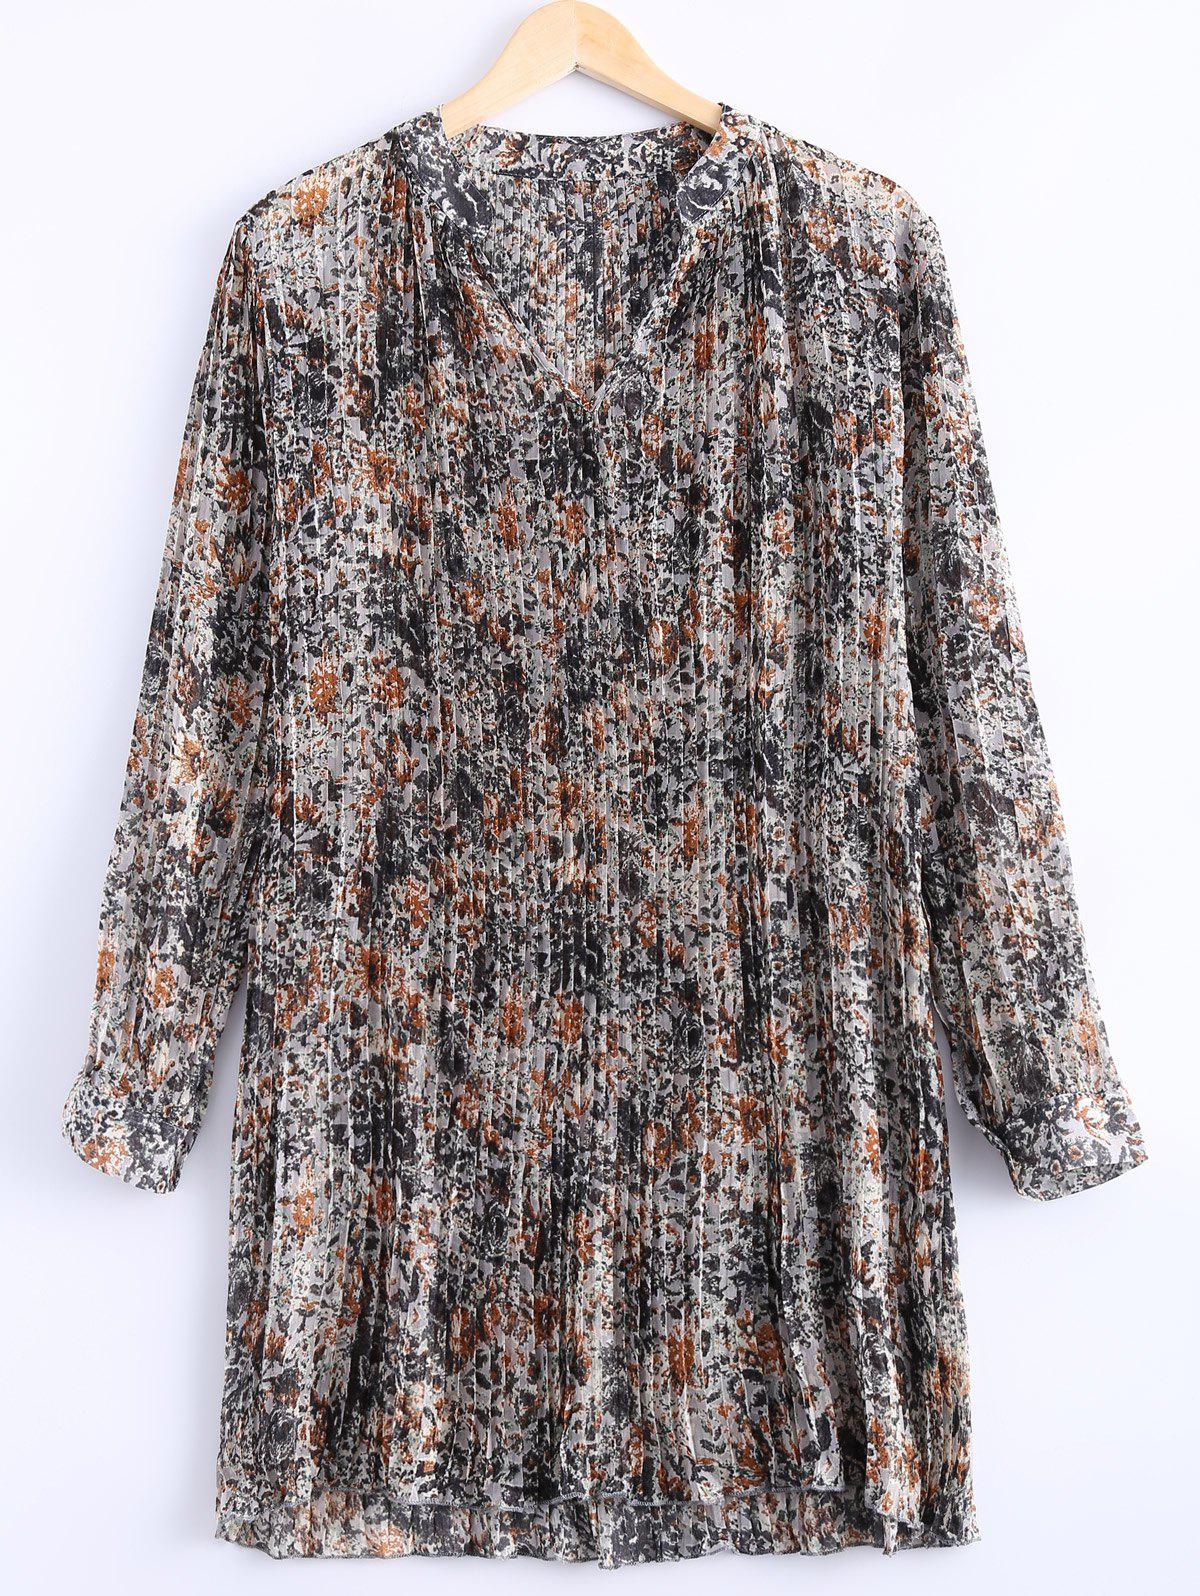 Stylish Women's V Neck Floral Print Long Sleeves Dress - GINGER ONE SIZE(FIT SIZE XS TO M)